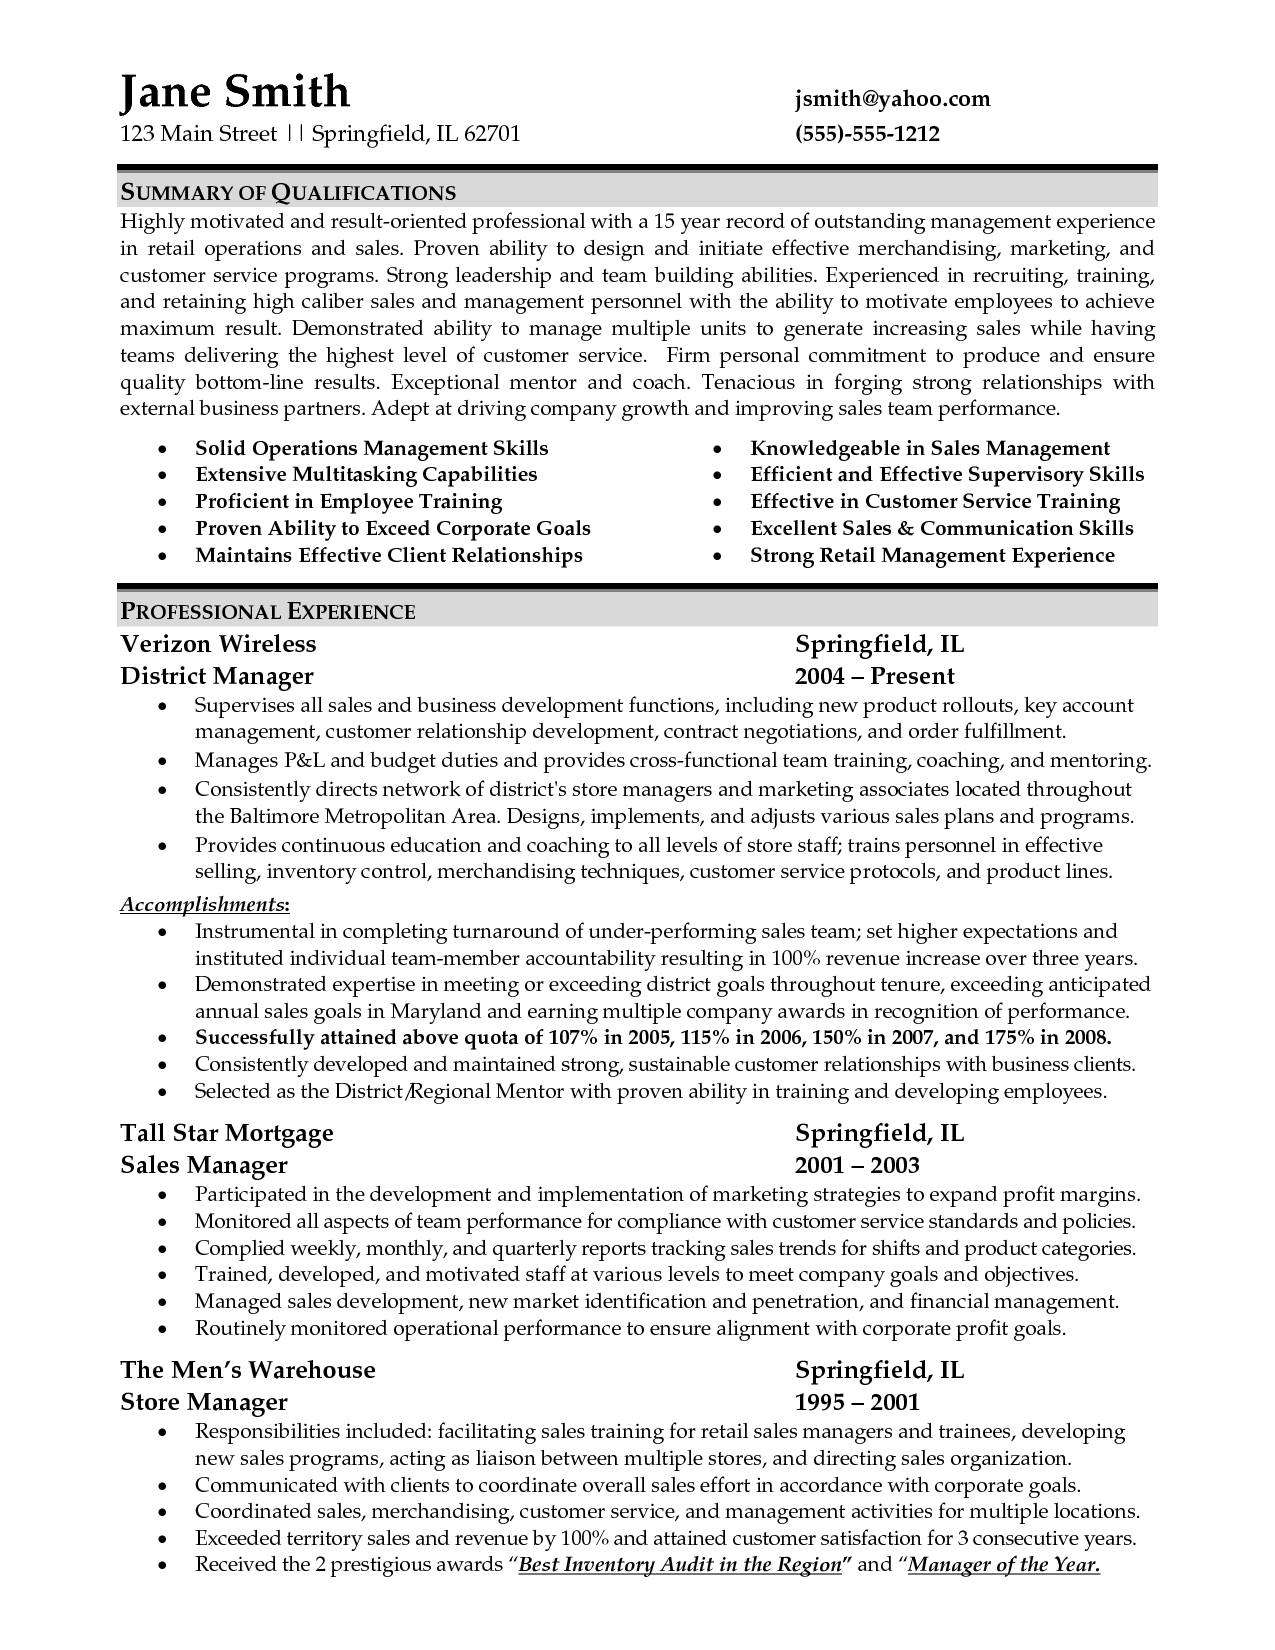 sample resume for retail management job retail store